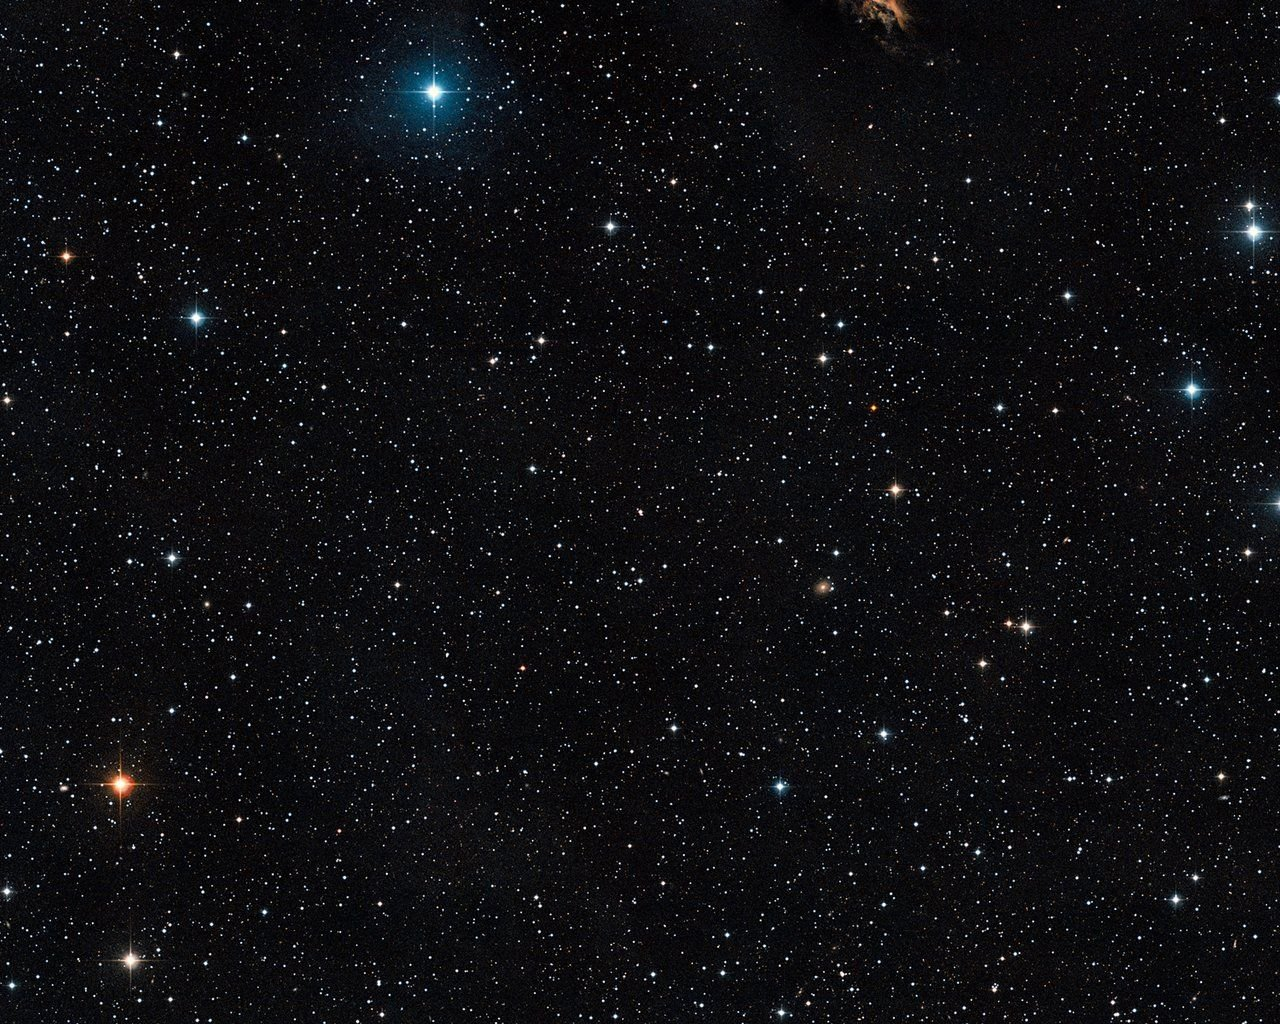 Stars in Space Wallpapers - Top Free ...